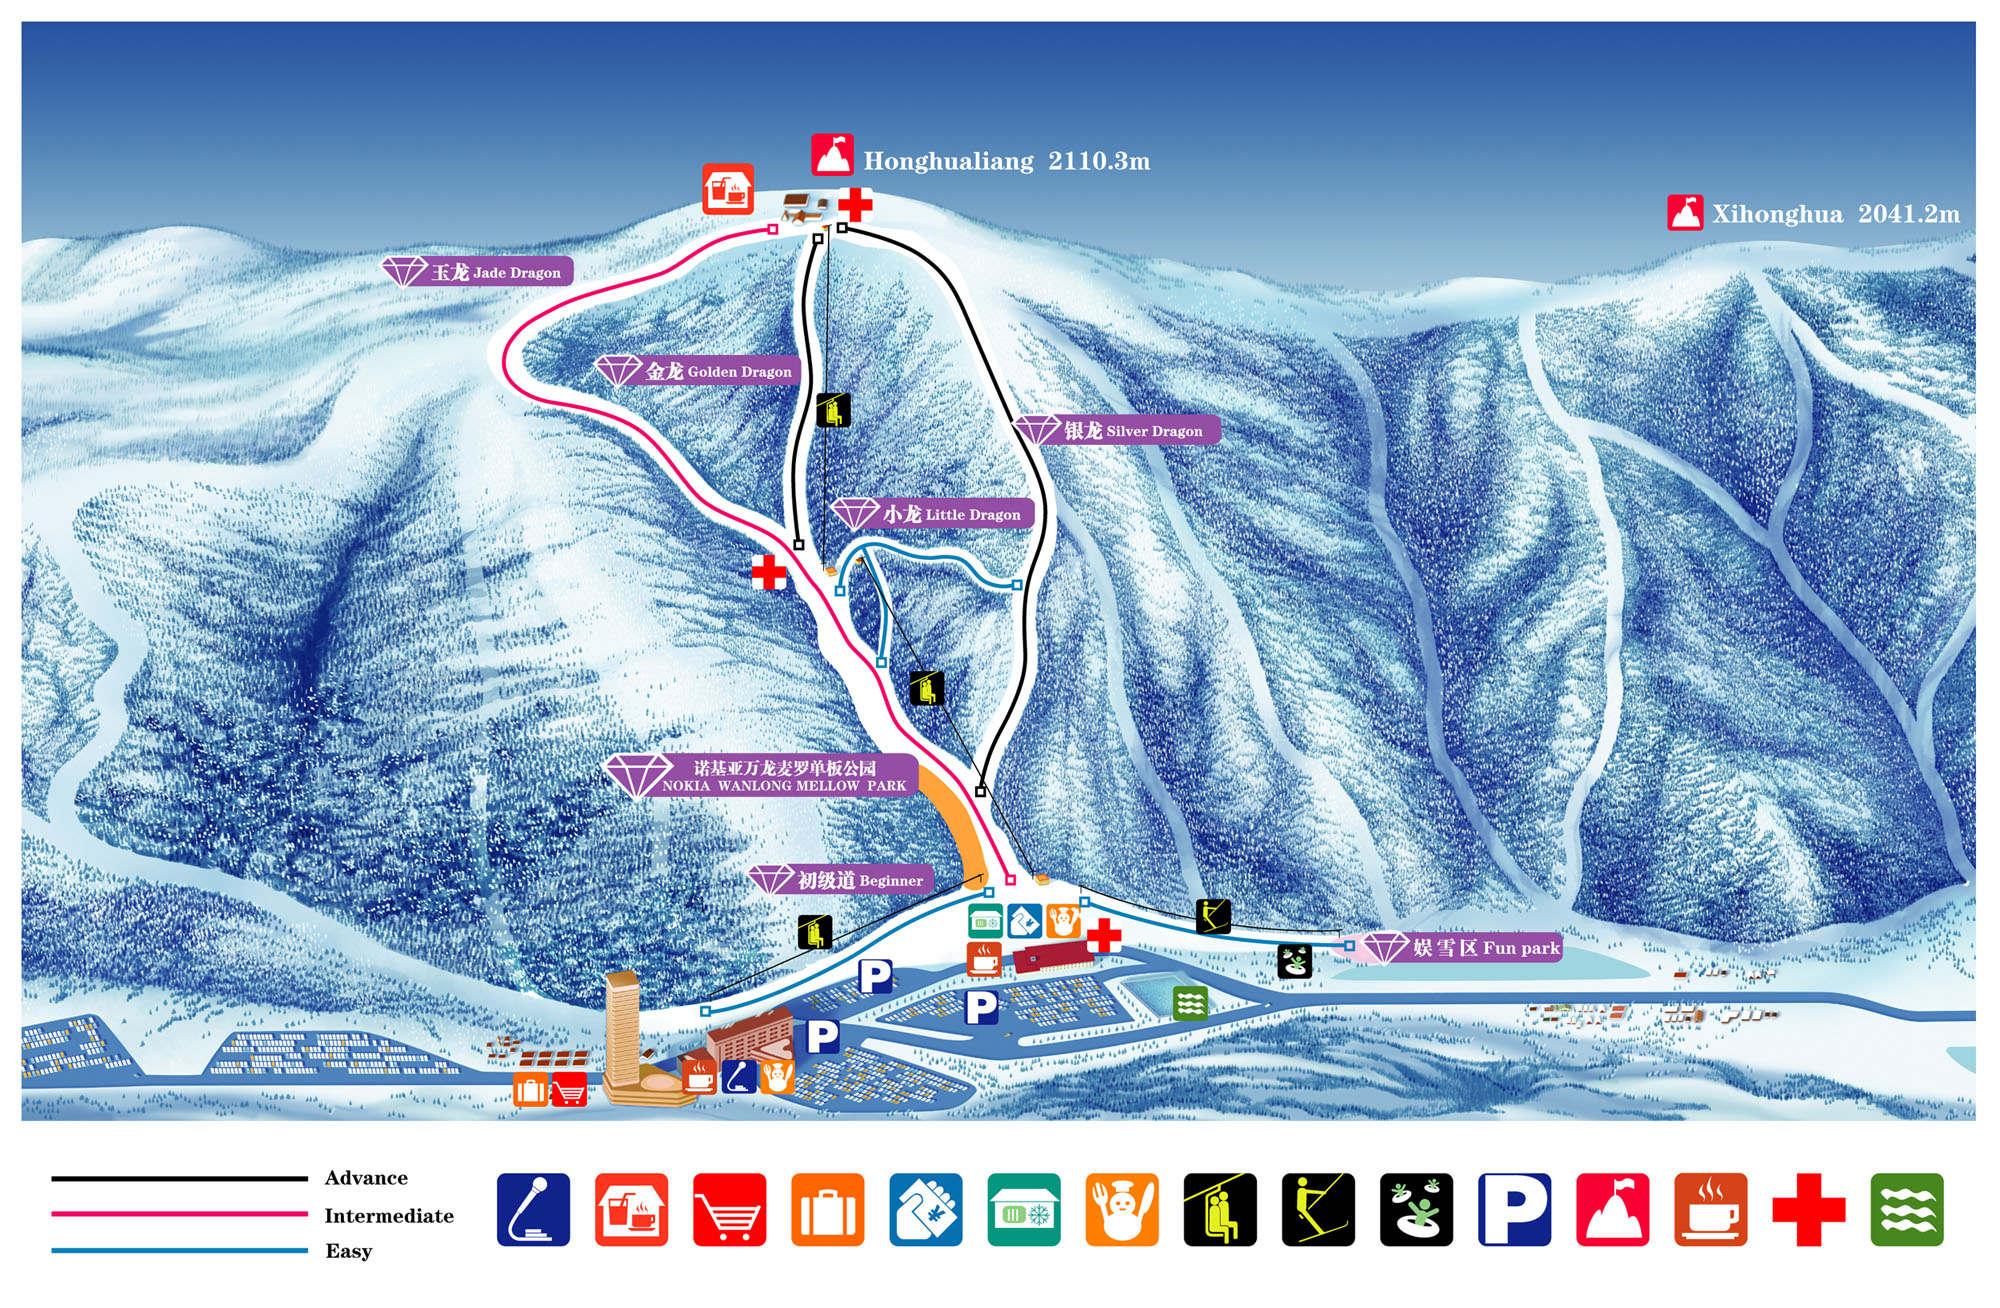 Wanlong Piste / Trail Map